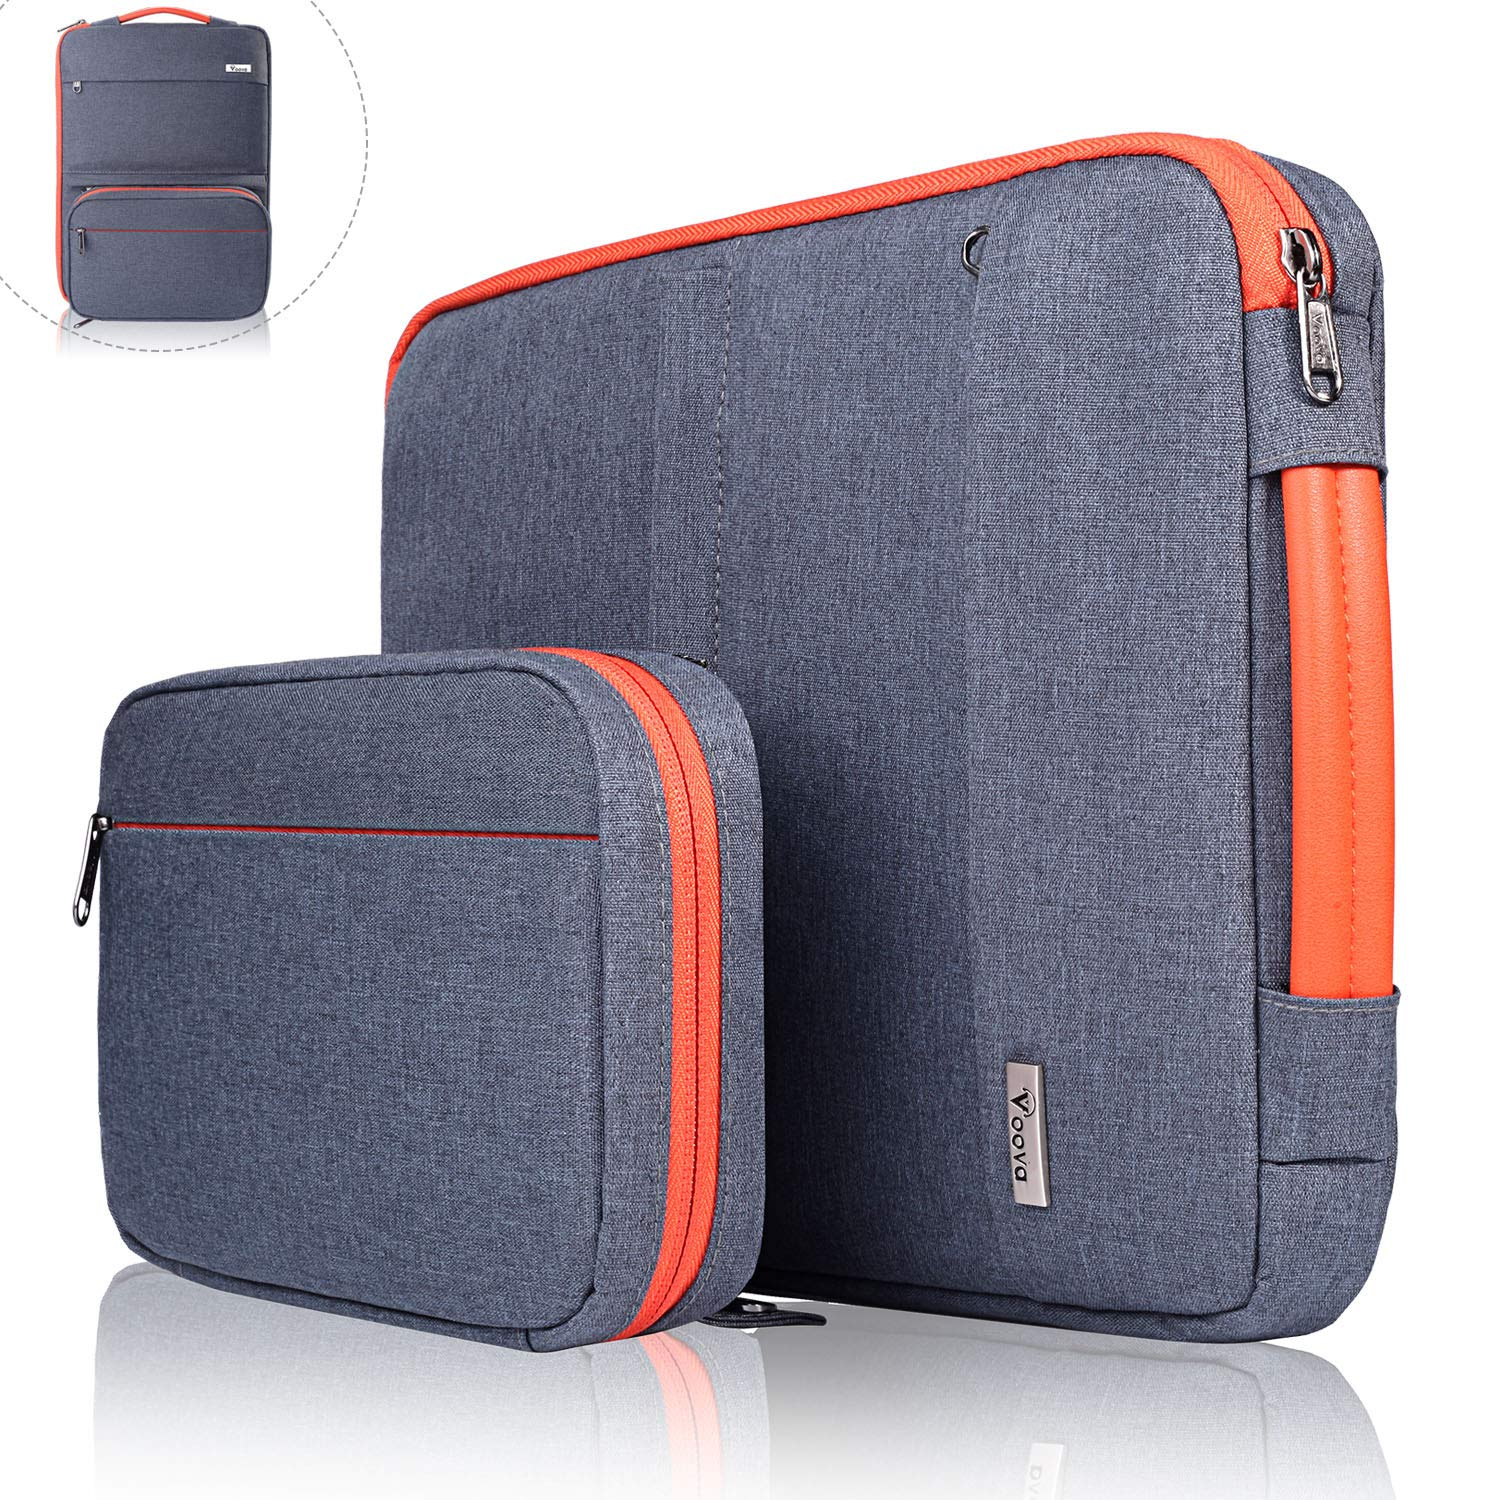 Voova 14-15.6 Inch Laptop Sleeve Bag Cover Special Design Waterproof Computer Protective Carry Case with Detachable Accessory Pocket Compatible with MacBook Pro Retina 15'', HP, Asus, Acer, Dark Gray by  Voova (Image #1)